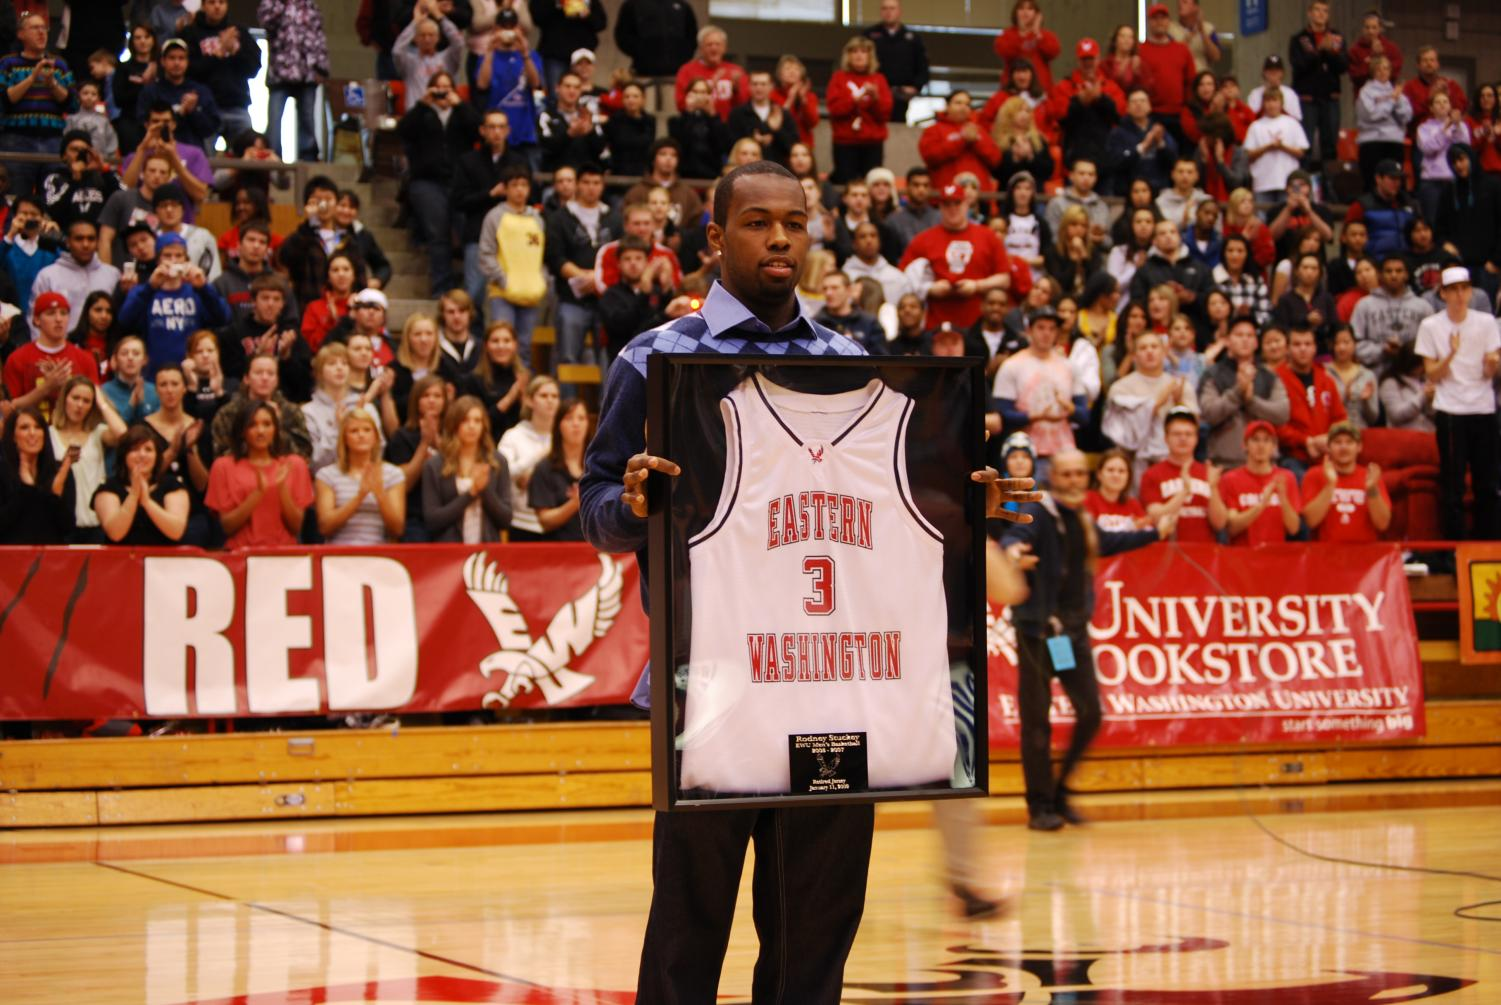 EWU honors Rodney Stuckey by retiring his No. 3 jersey in 2009. Stuckey averaged over 24 points per game during his time at EWU.